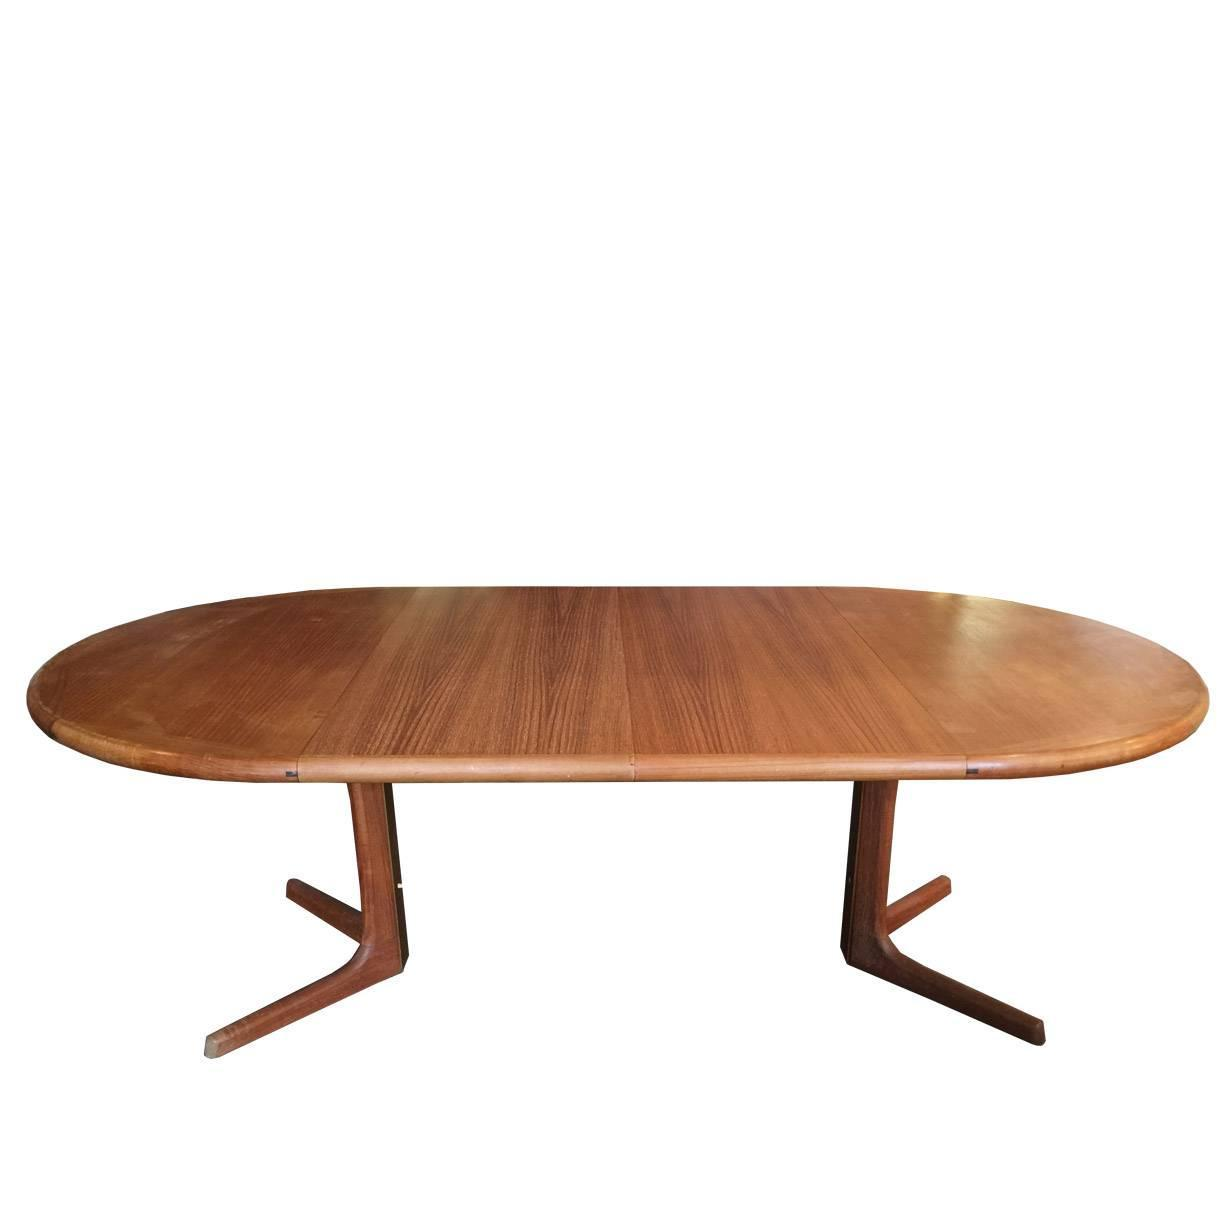 Oval Danish Teak Dining Table by Drylund at 1stdibs : Teakdanishdiningtableorgz from www.1stdibs.com size 1224 x 1224 jpeg 36kB